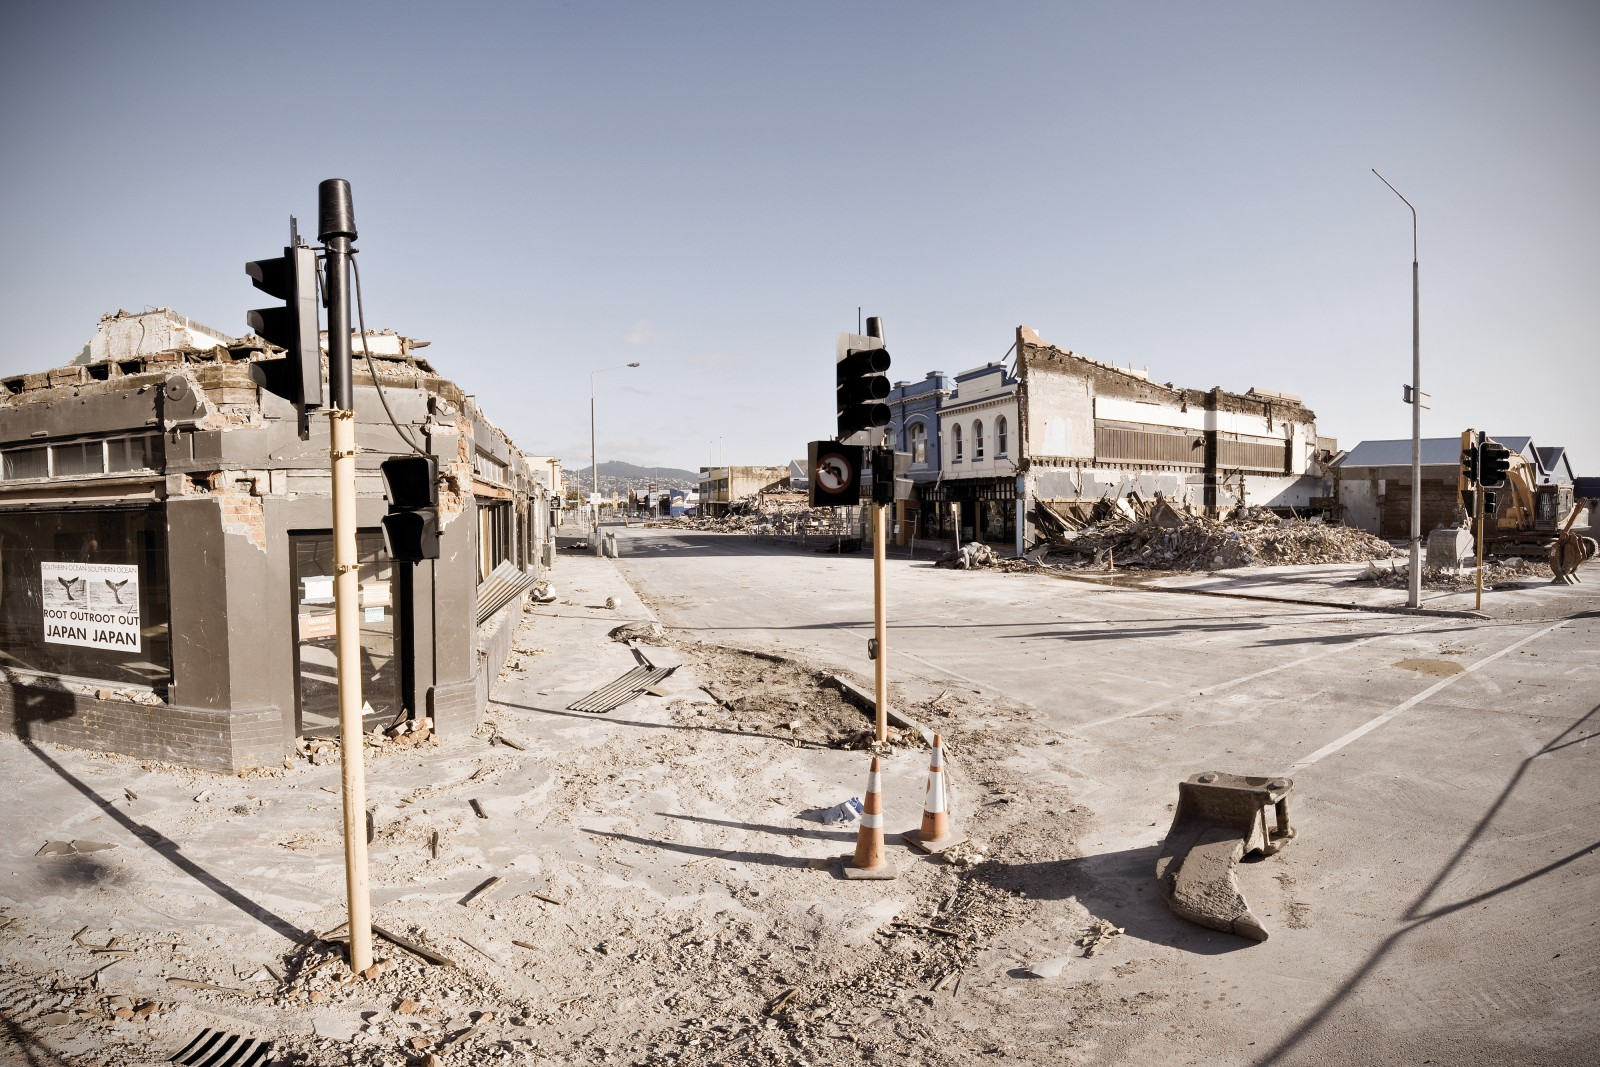 """Evoking a ghost town of the Old West, ruins stand at the intersection of St Asaph and Manchester Sts, just outside the original """"Red Zone"""" cordon sealing the CBD. Beverley Studios, a heritage building once standing on the far corner, was declared safe by an engineer, despite the partial collapse of adjoining buildings in the quake. But in a surprise twist, owners Marg and Peter Straw got word one evening that their building would be demolished the next day. They were given half an hour to remove what they needed. The building was gone by midday."""